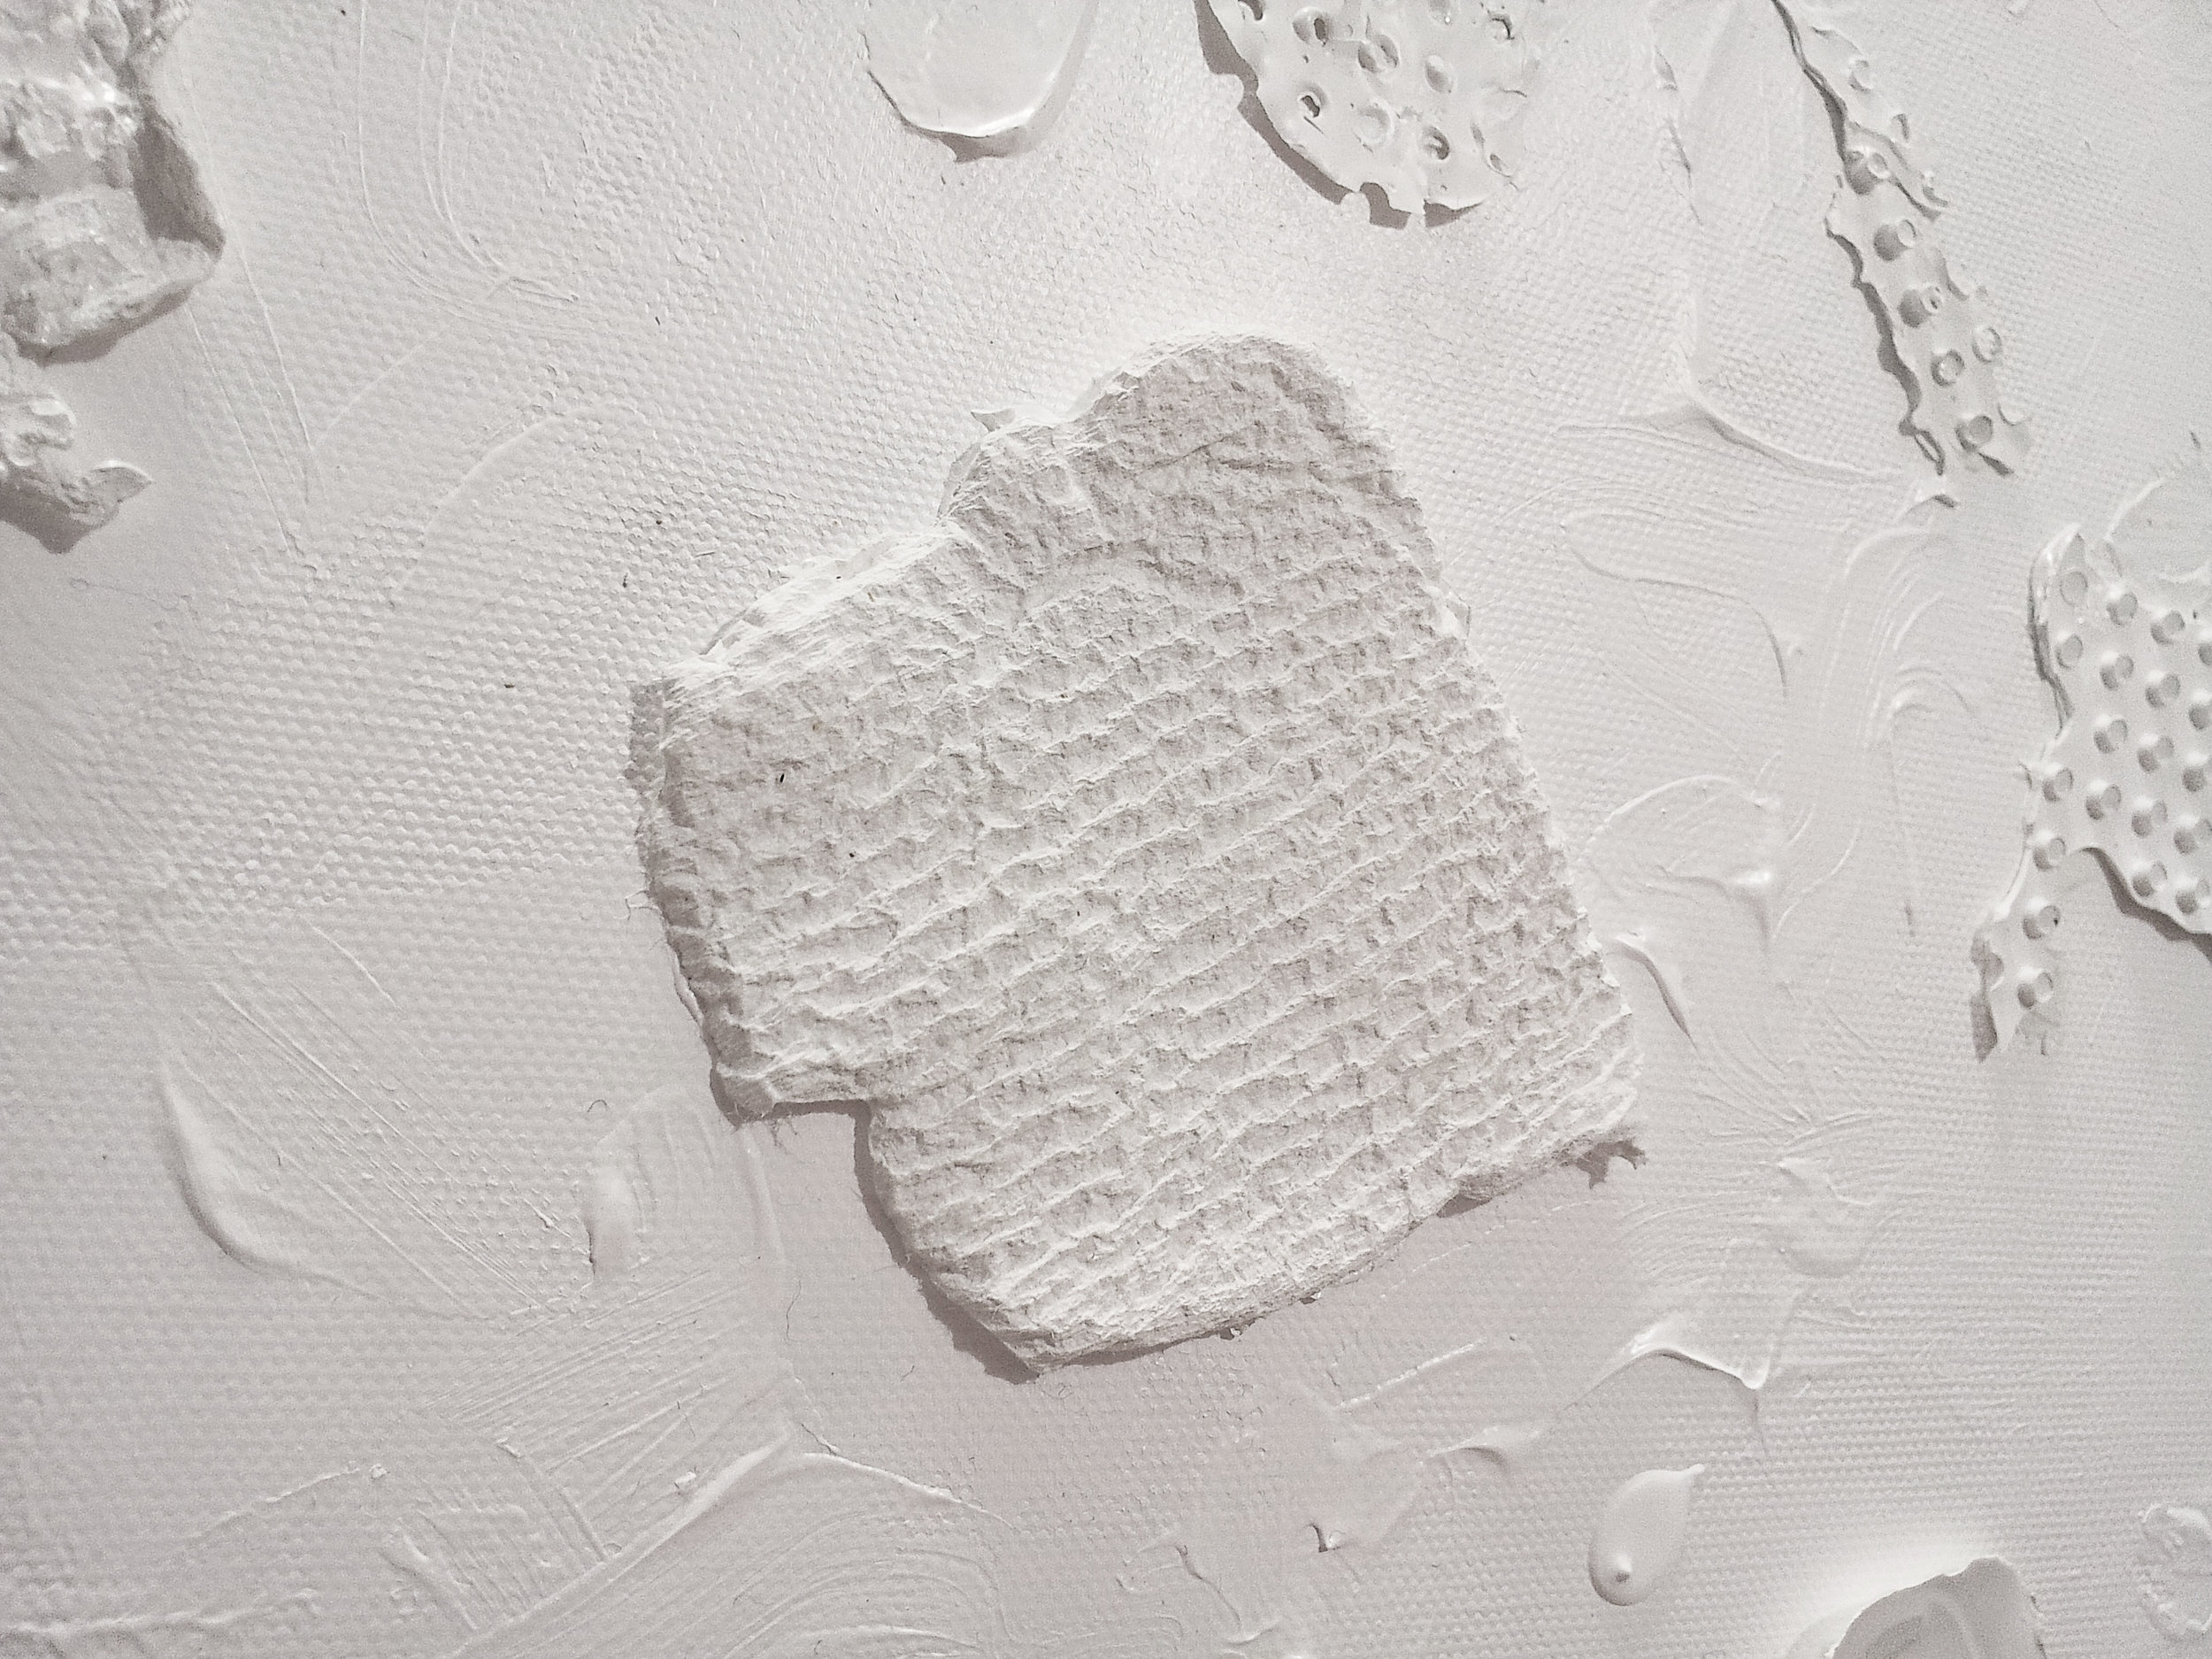 Non-painting (Detail) / 2012 / Acrylic / 100x72 cm